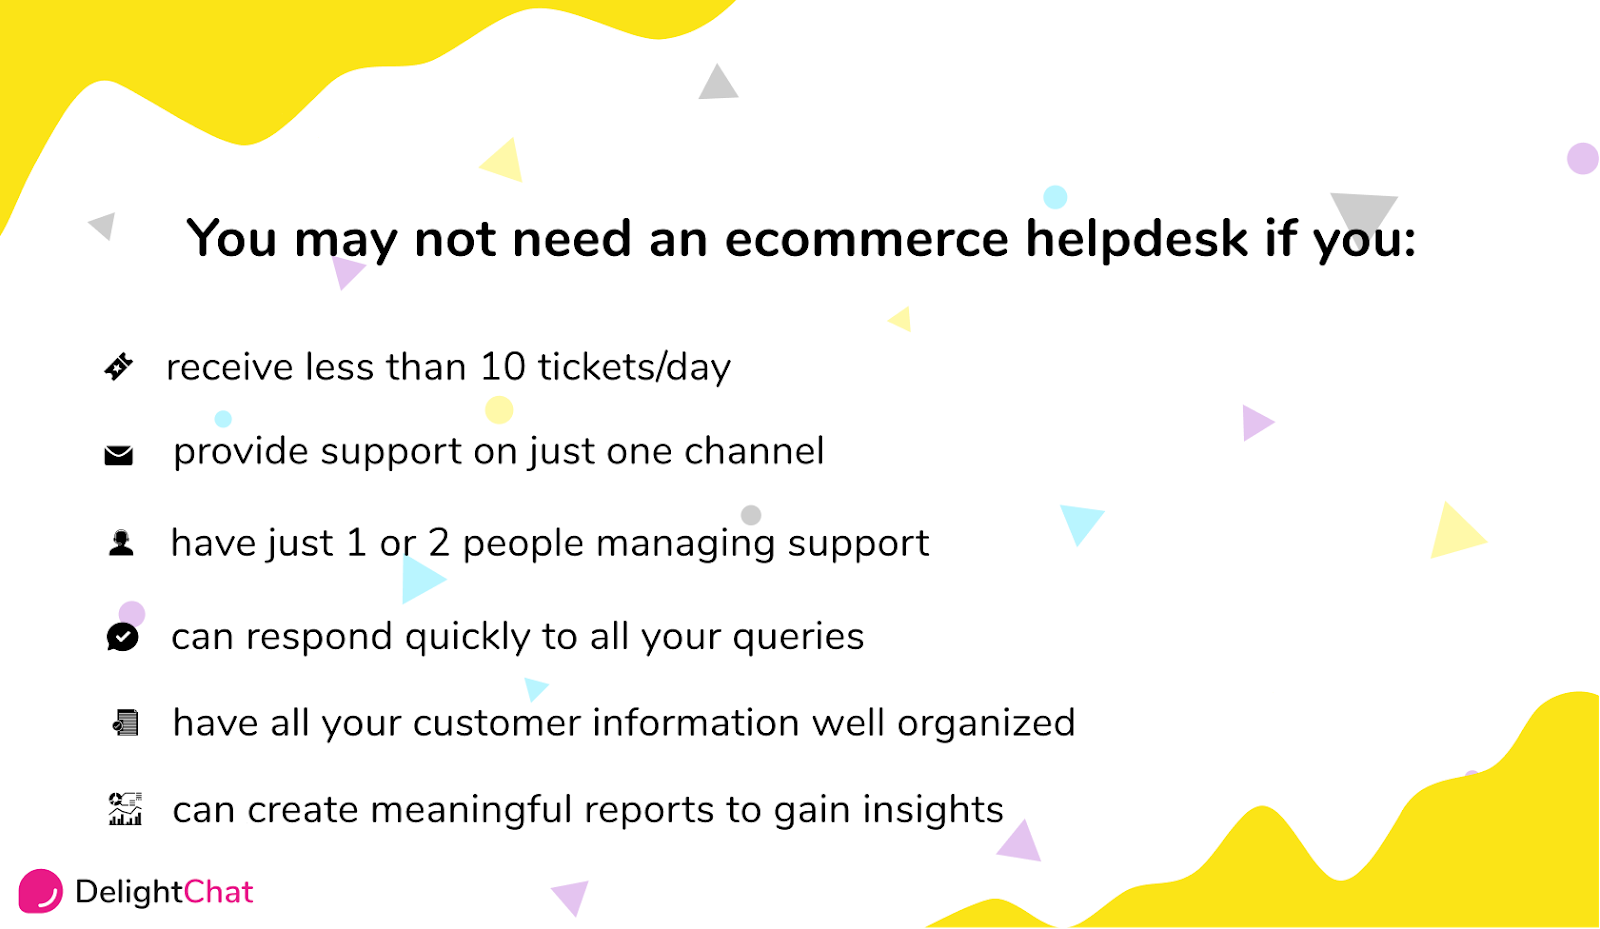 When you don't need an ecommerce helpdesk